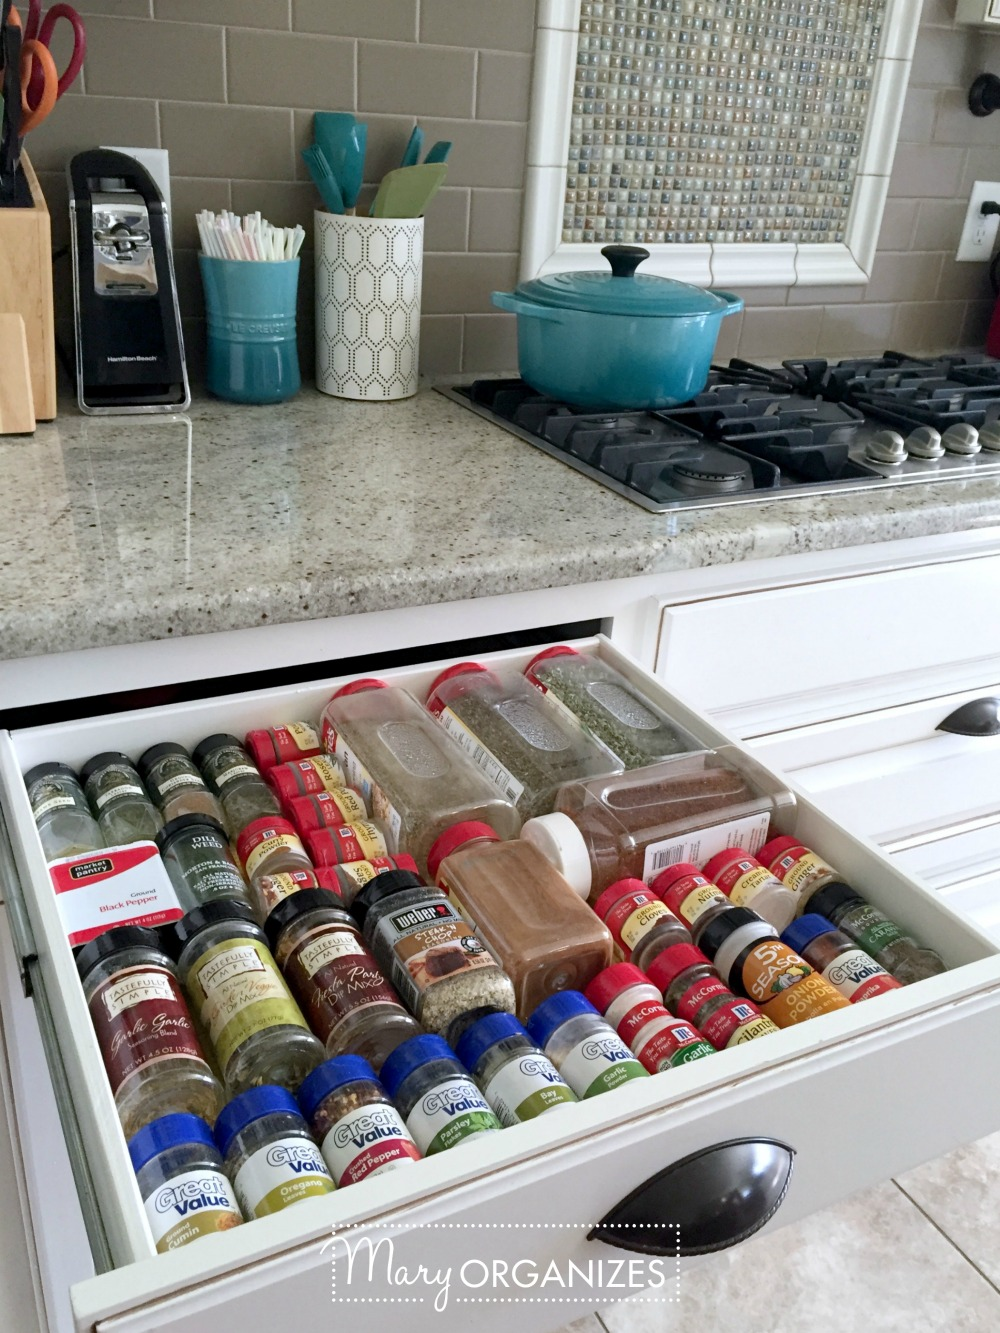 Organizing Spices - This is what I do - Mary ORGANIZES -2